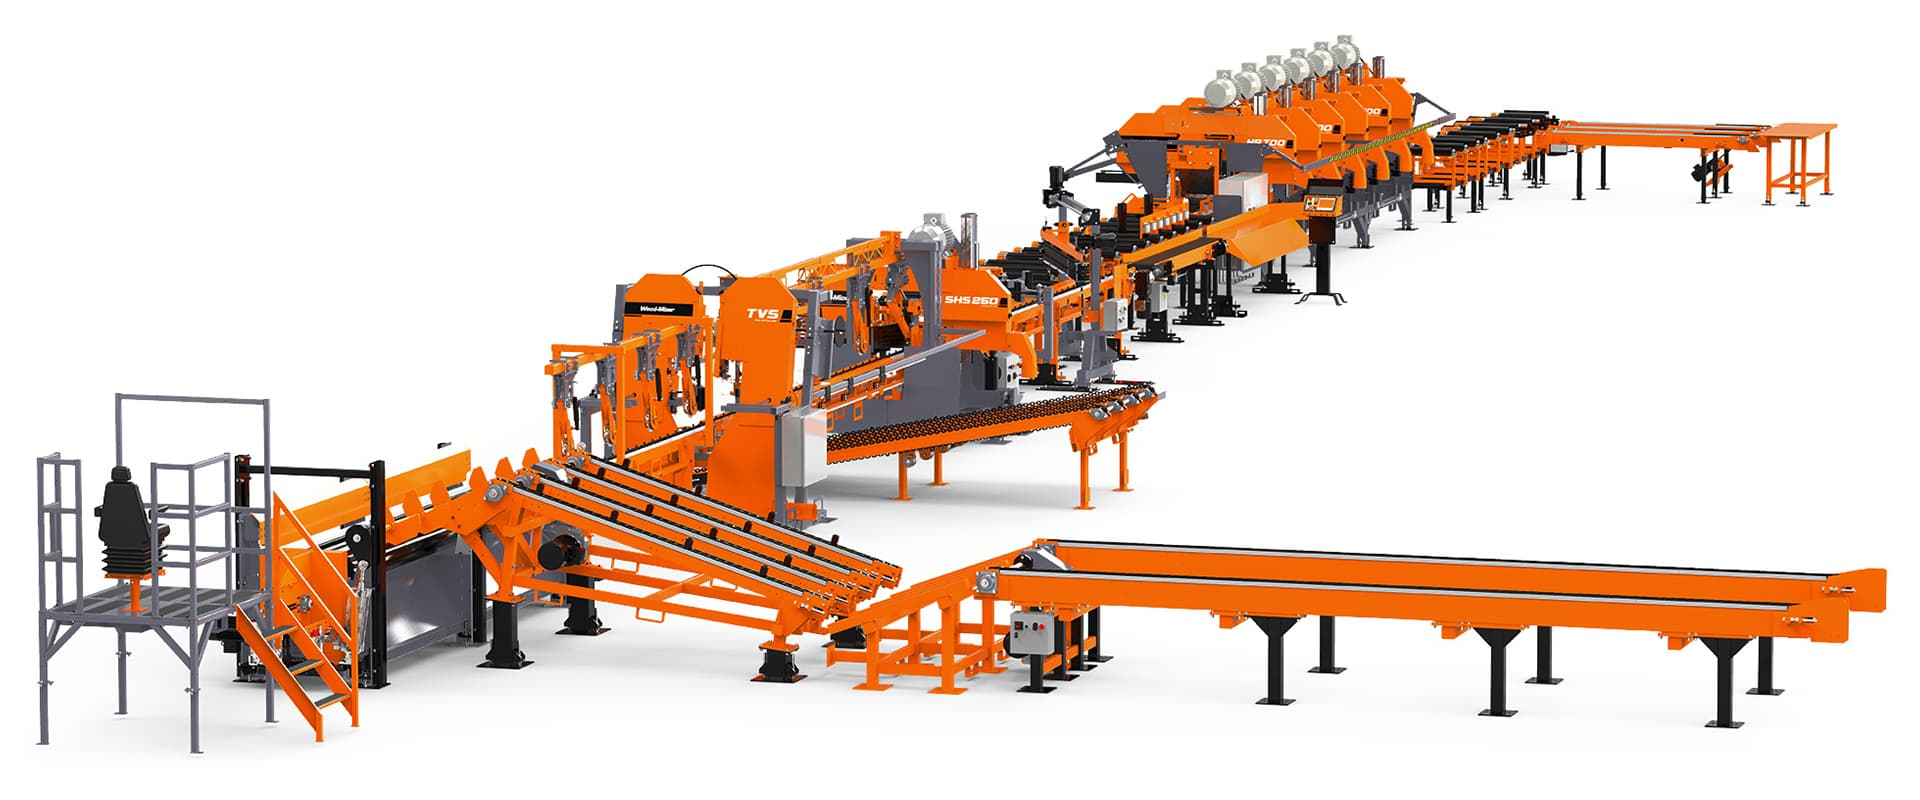 SLP2 Small Log Processing Line